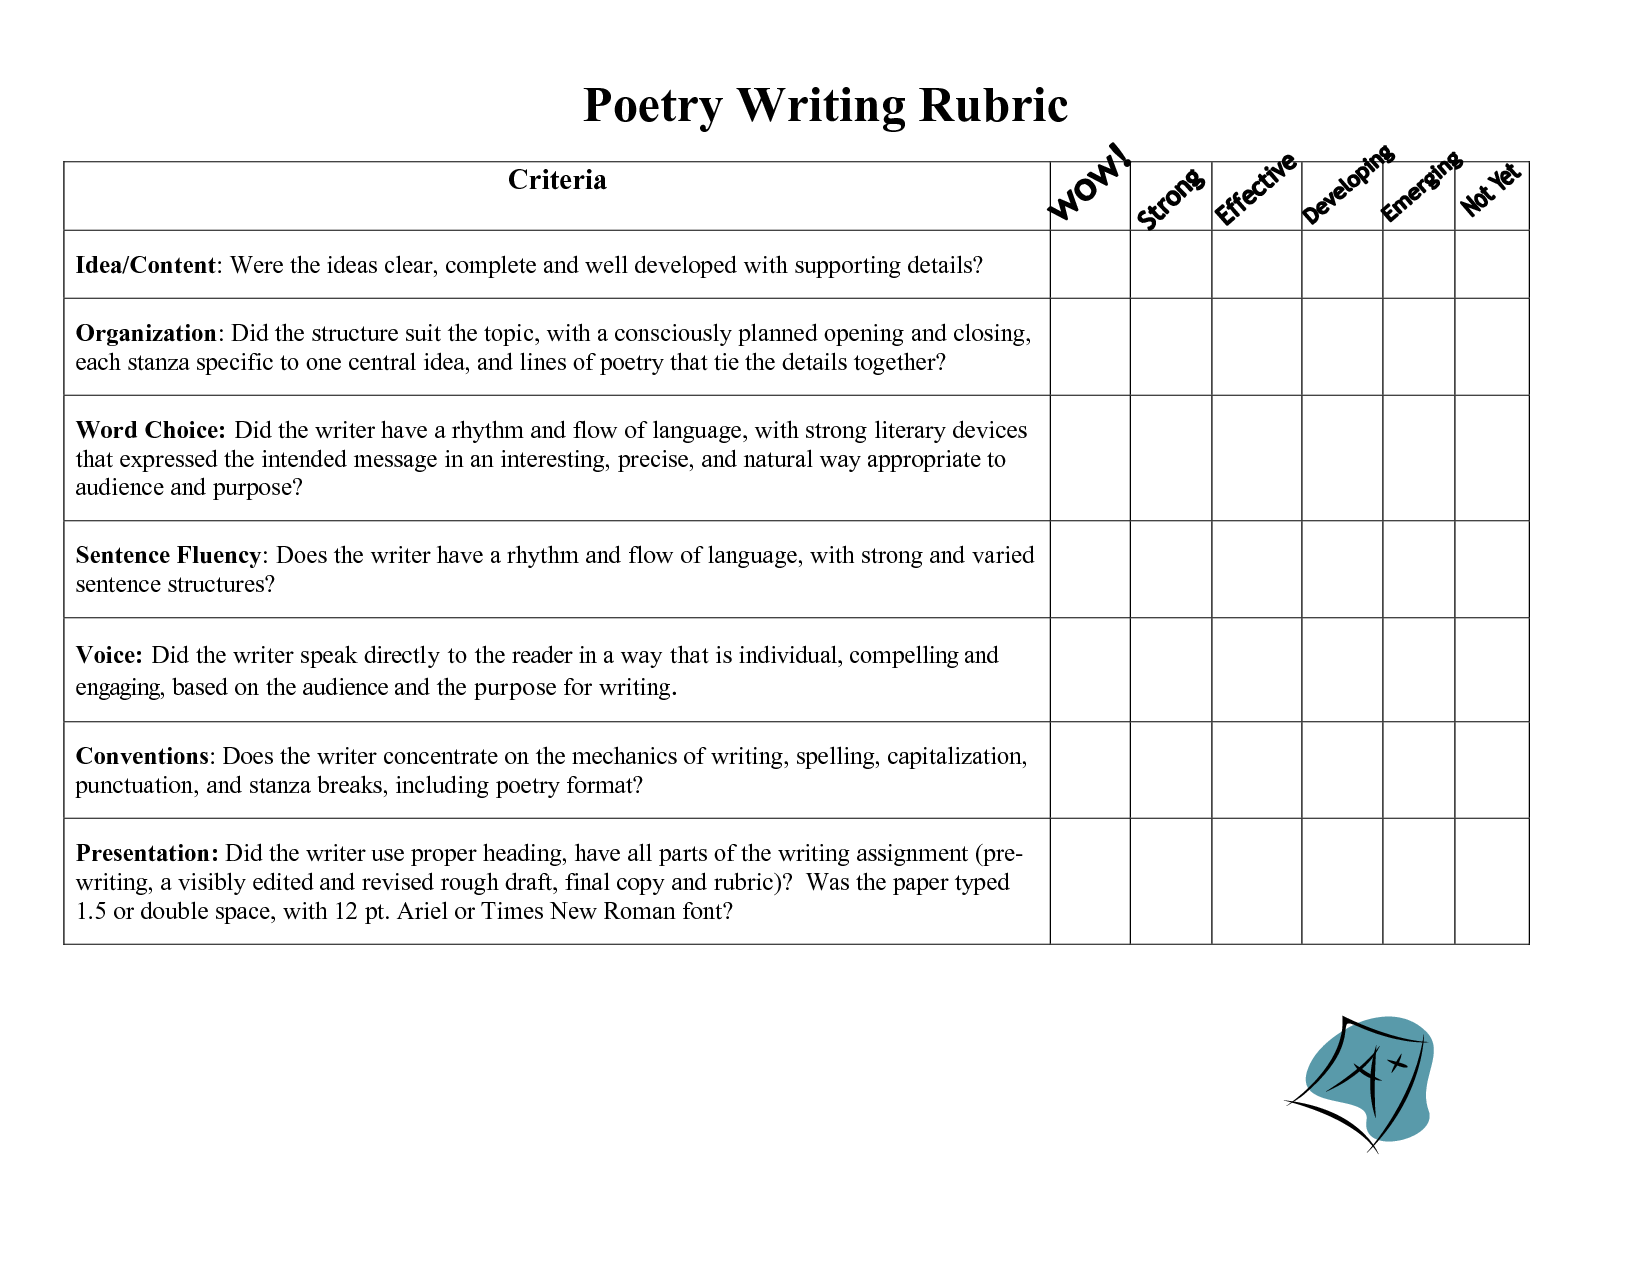 poetry essay grading rubric Involved the use of a scoring guide (a rubric, or grading system, that uses a set  of  state level in oregon, a scoring guide for writing is used each spring to  assess the  using a scoring guide was a poetry project for tenth graders it was  the.